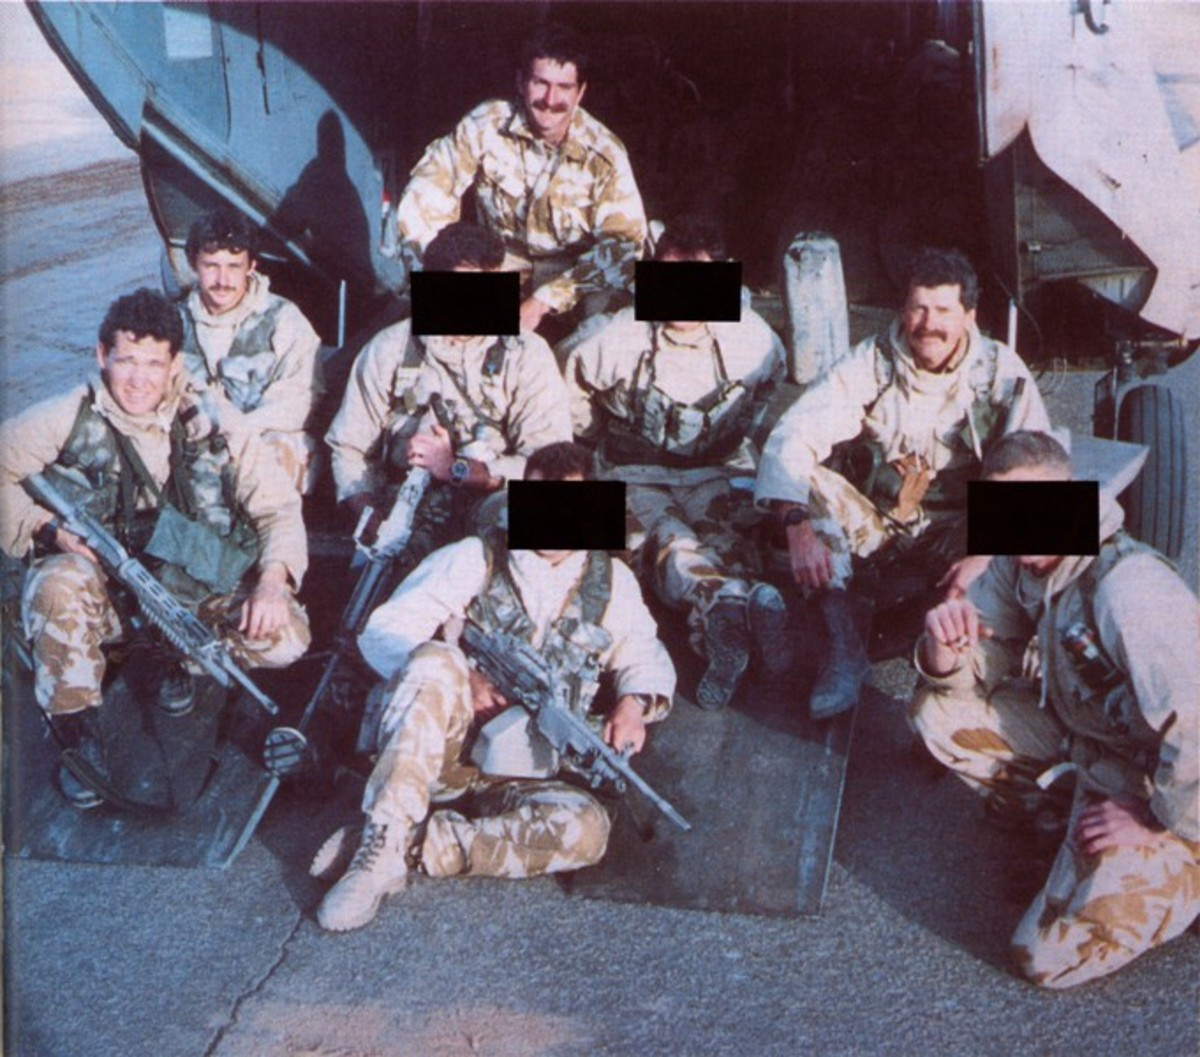 The actual Bravo-two-zero team at the start of their mission